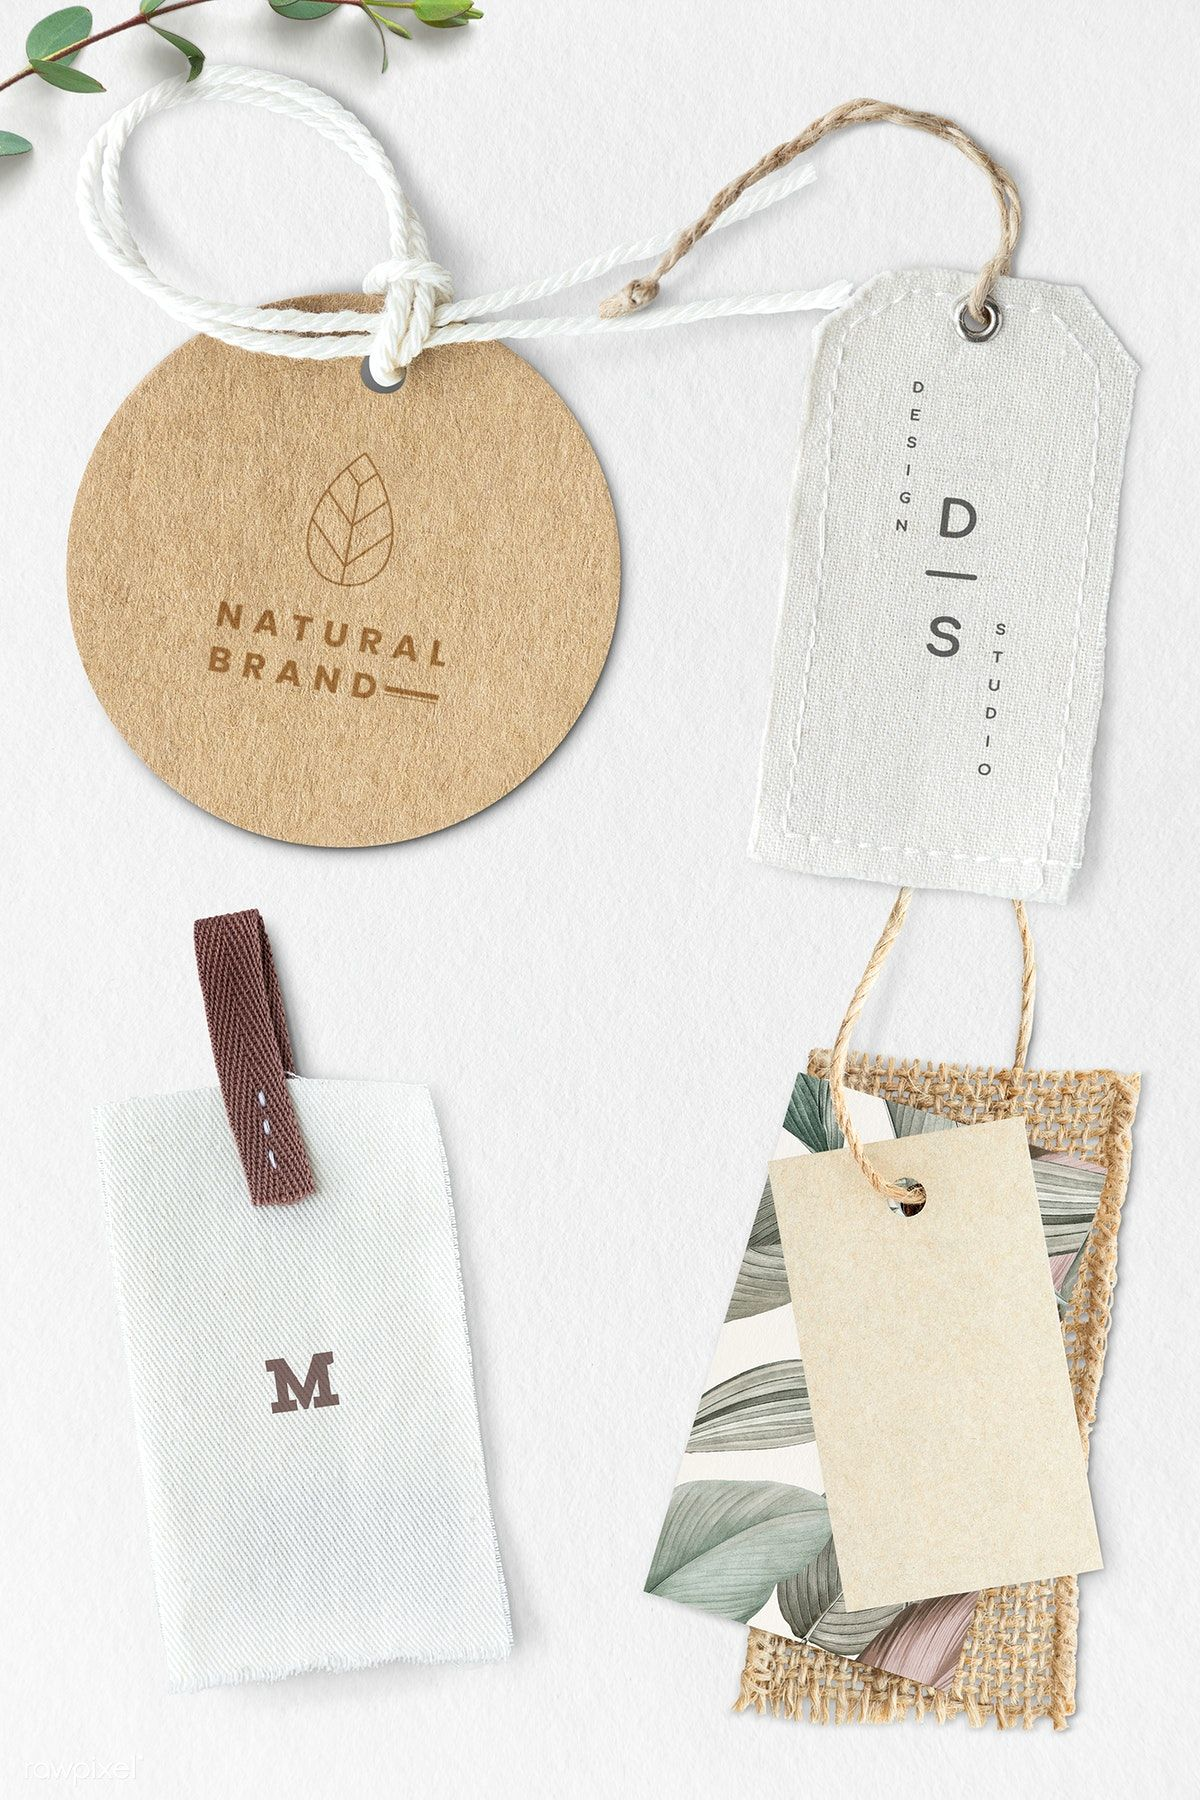 Download Download Premium Psd Of Blank Fashion Brand Label Mockup 1202092 In 2020 Brand Guidelines Design Organic Branding Clothing Packaging